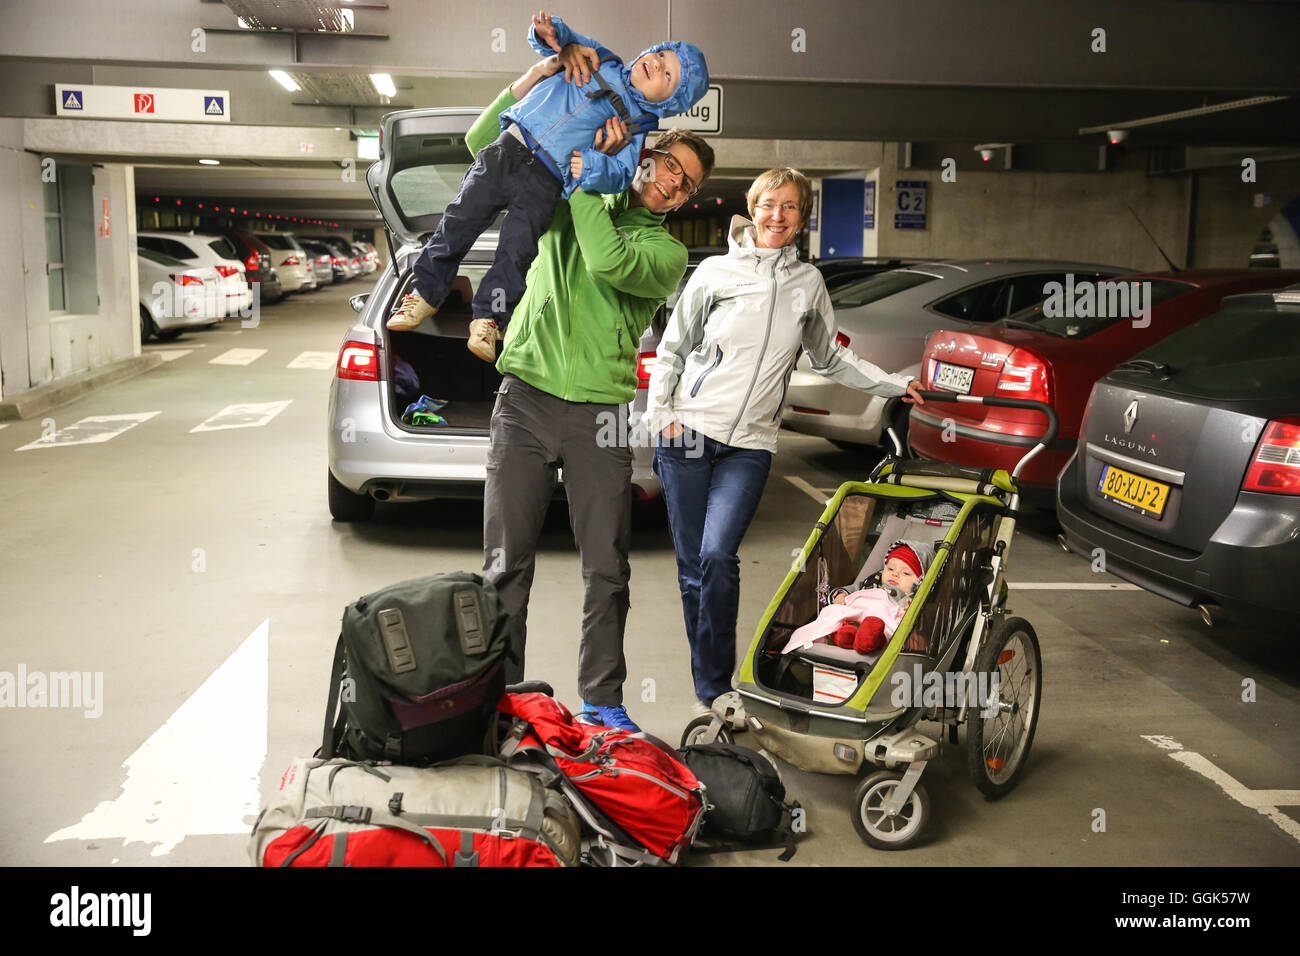 Young family with children, departure at airport, car parking area, baby, small boy, luggage, stroller, backpack, - Stock Image